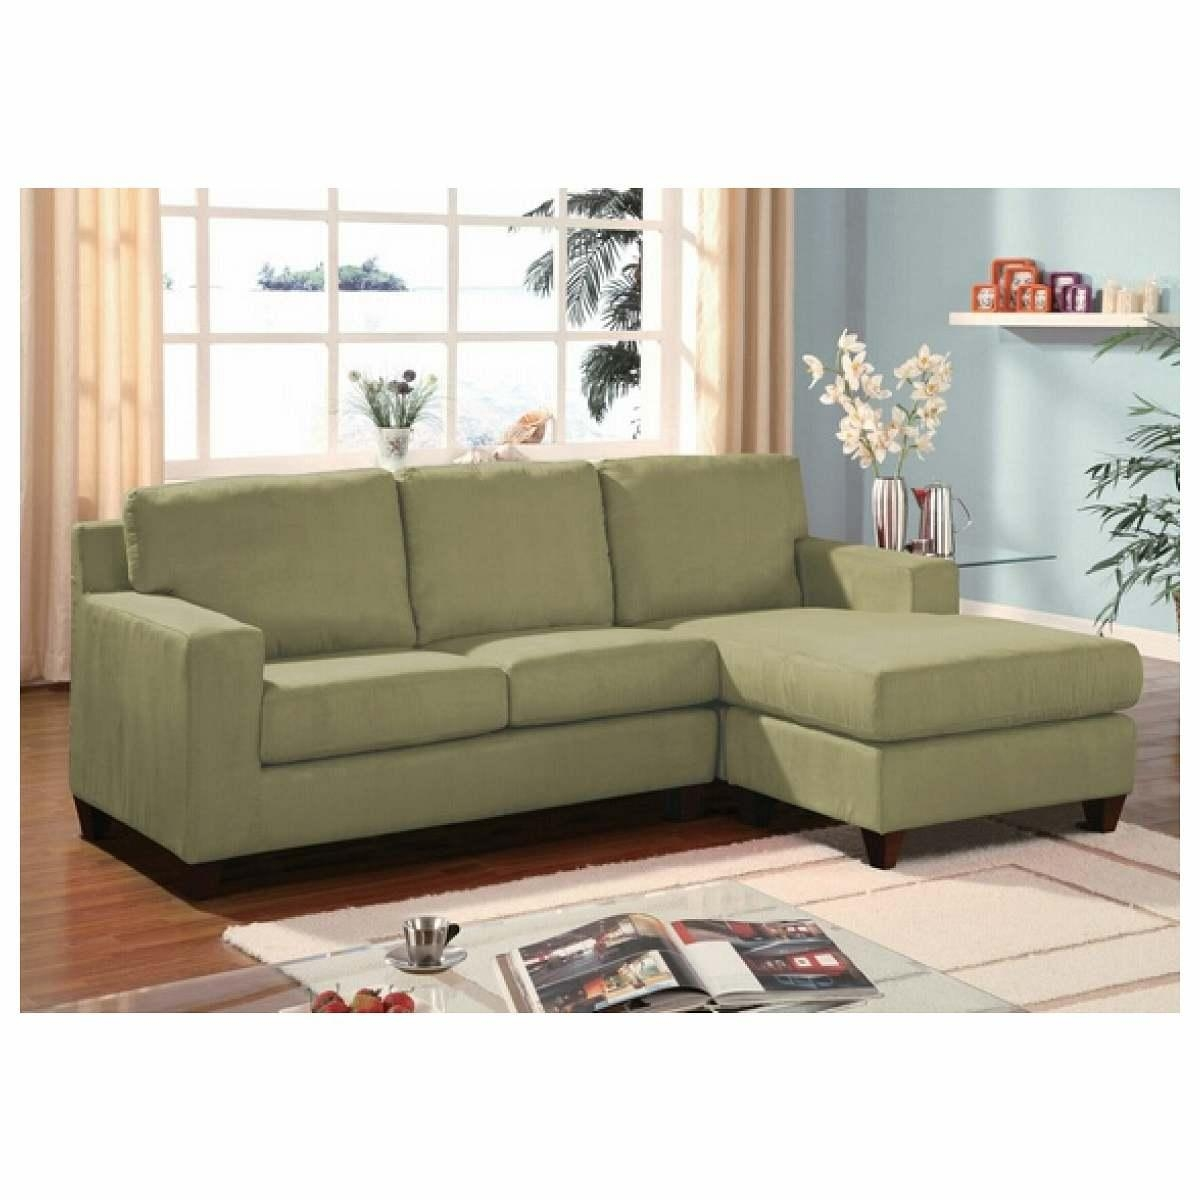 Furniture Home : Green Microfiber Reversible Sectional Sofa With Intended For Green Sectional Sofa With Chaise (View 14 of 15)